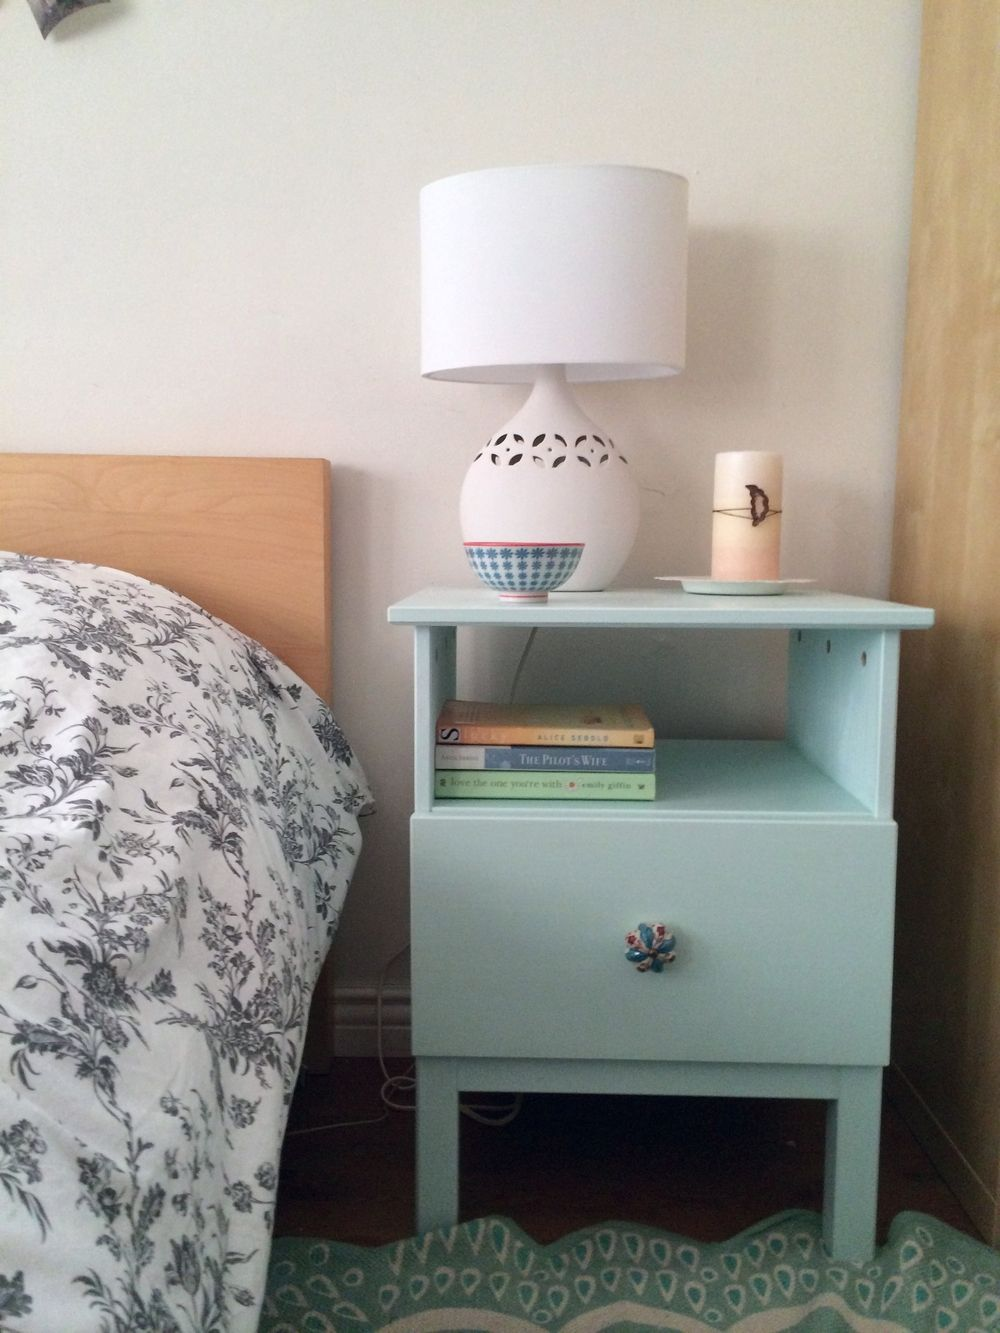 Ikea tarva nightstand hack dwelling pinterest for Ikea tarva hack de lit